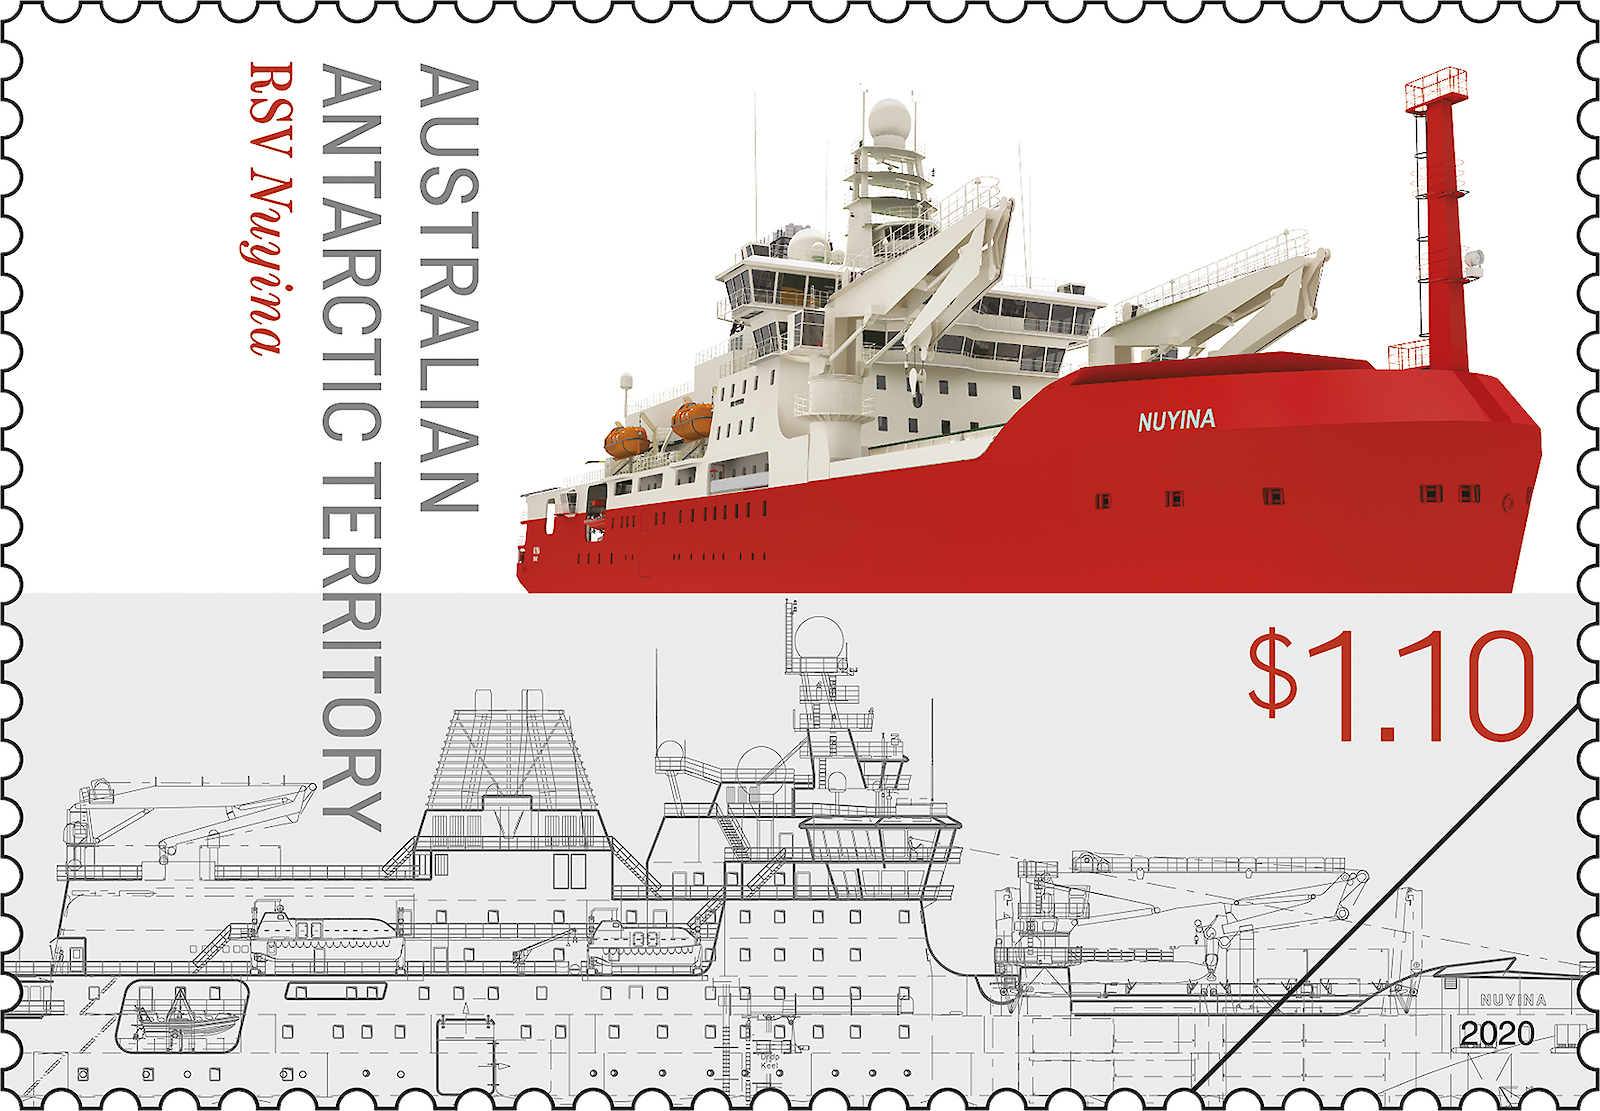 Design features of the ship illustrated on a $1.10 stamp.